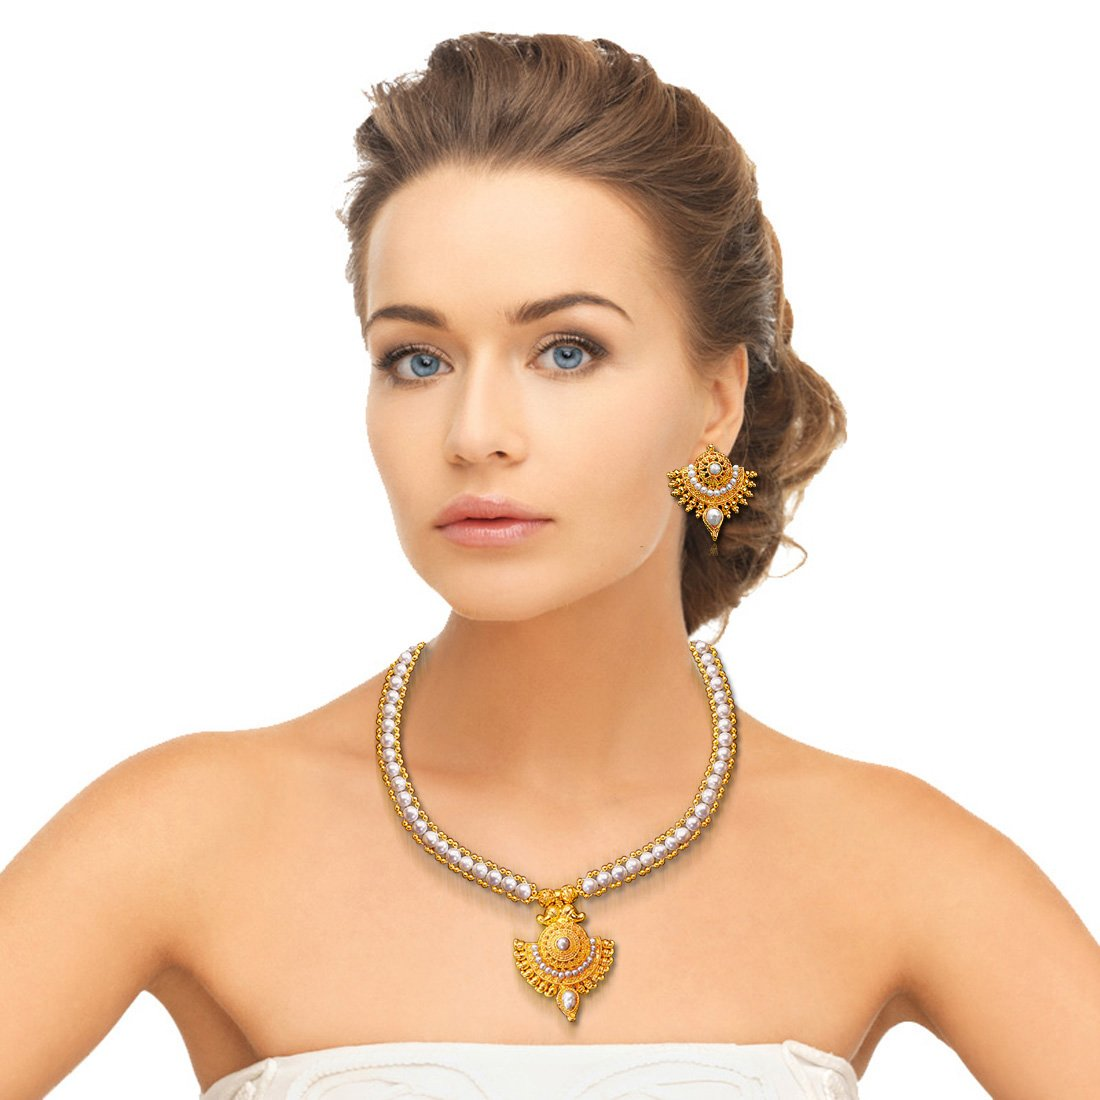 Innocent Wonder - Drop Shaped Gold Plated Pendant & Freshwater Pearl Necklace & Earring Set for Women (SP124)